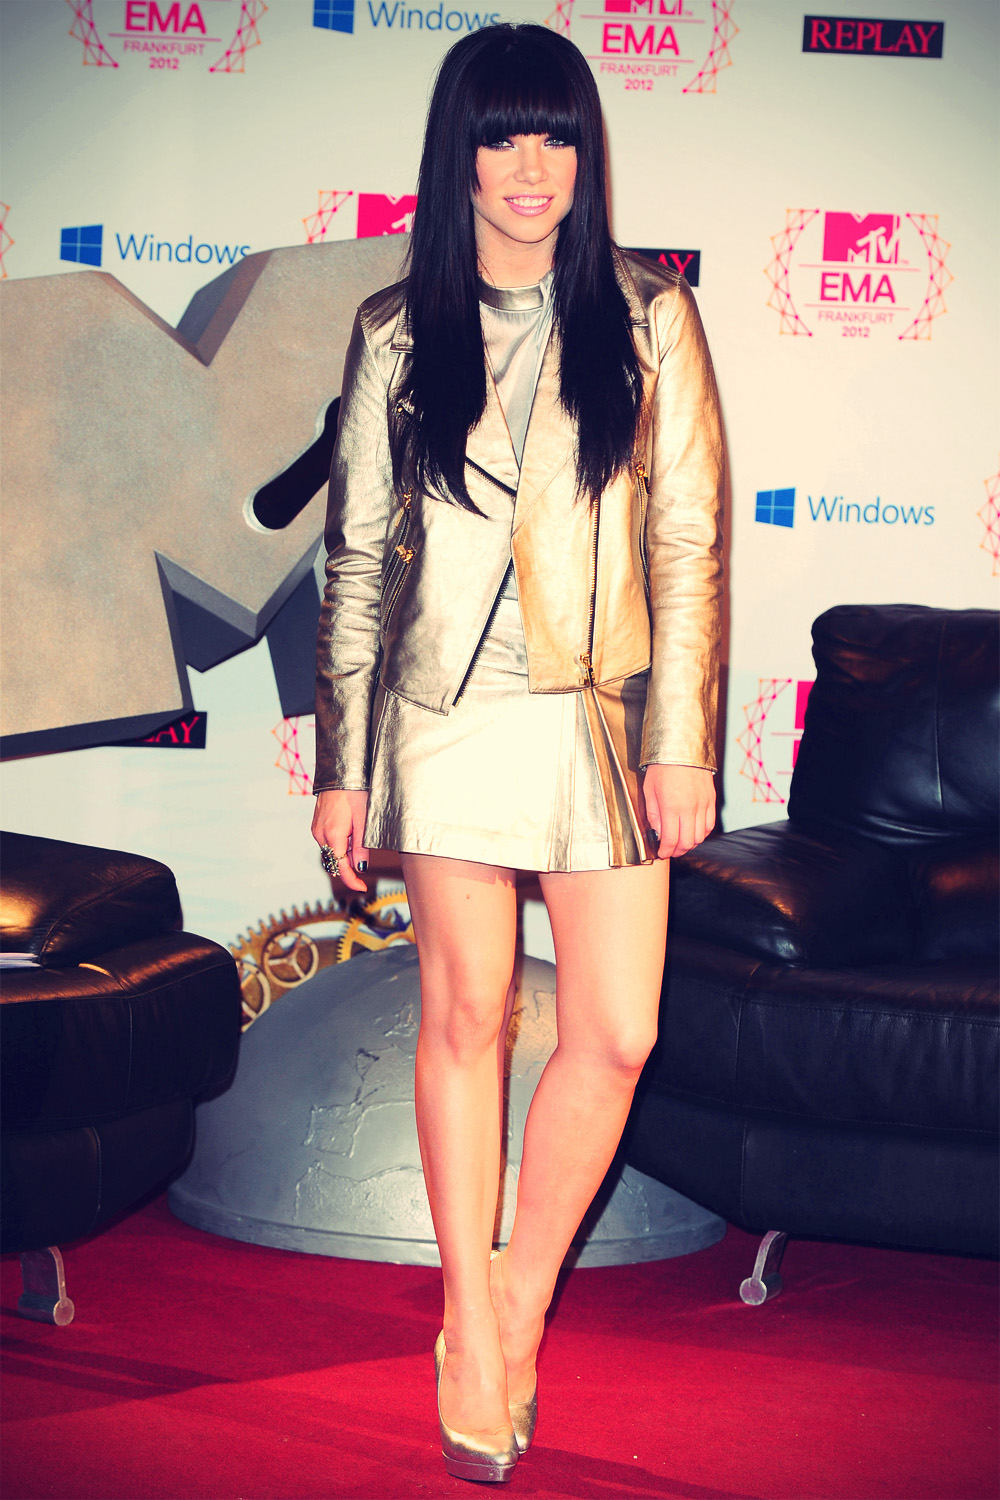 Carly Rae Jepsen at 2012 MTV EMA